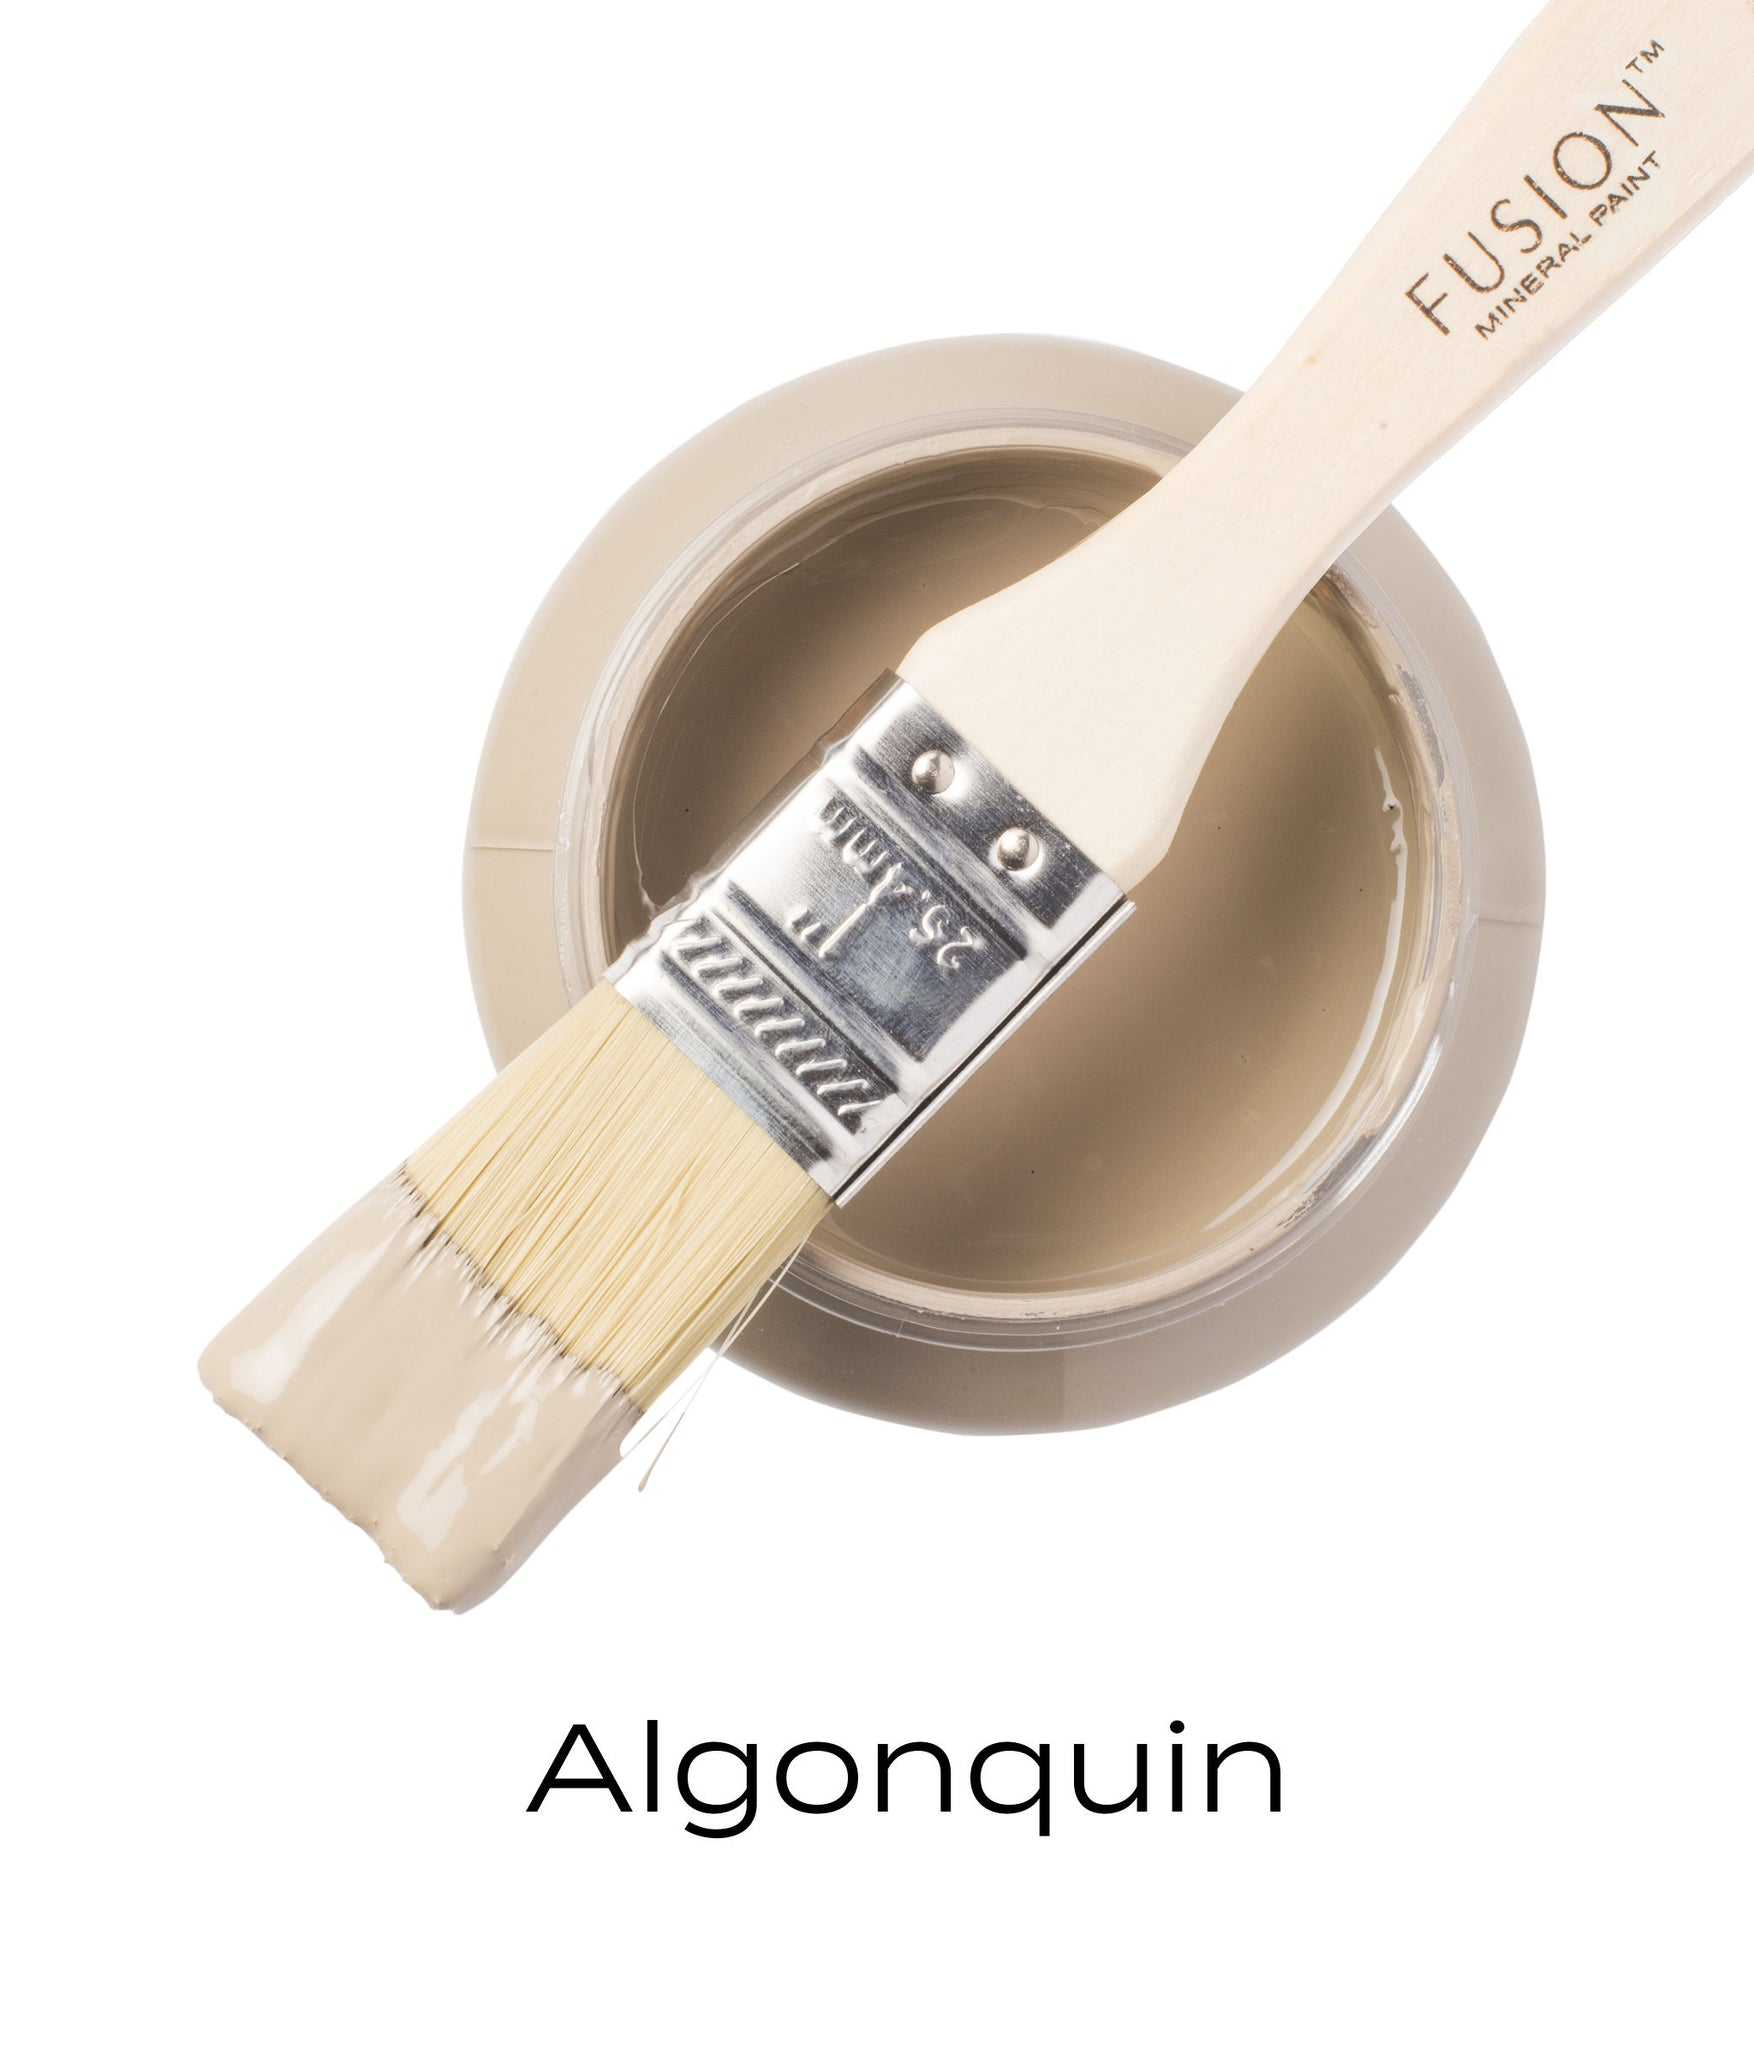 Algonquin - Fusion Mineral Paint - Home Revival - Fusion Mineral Paint UK